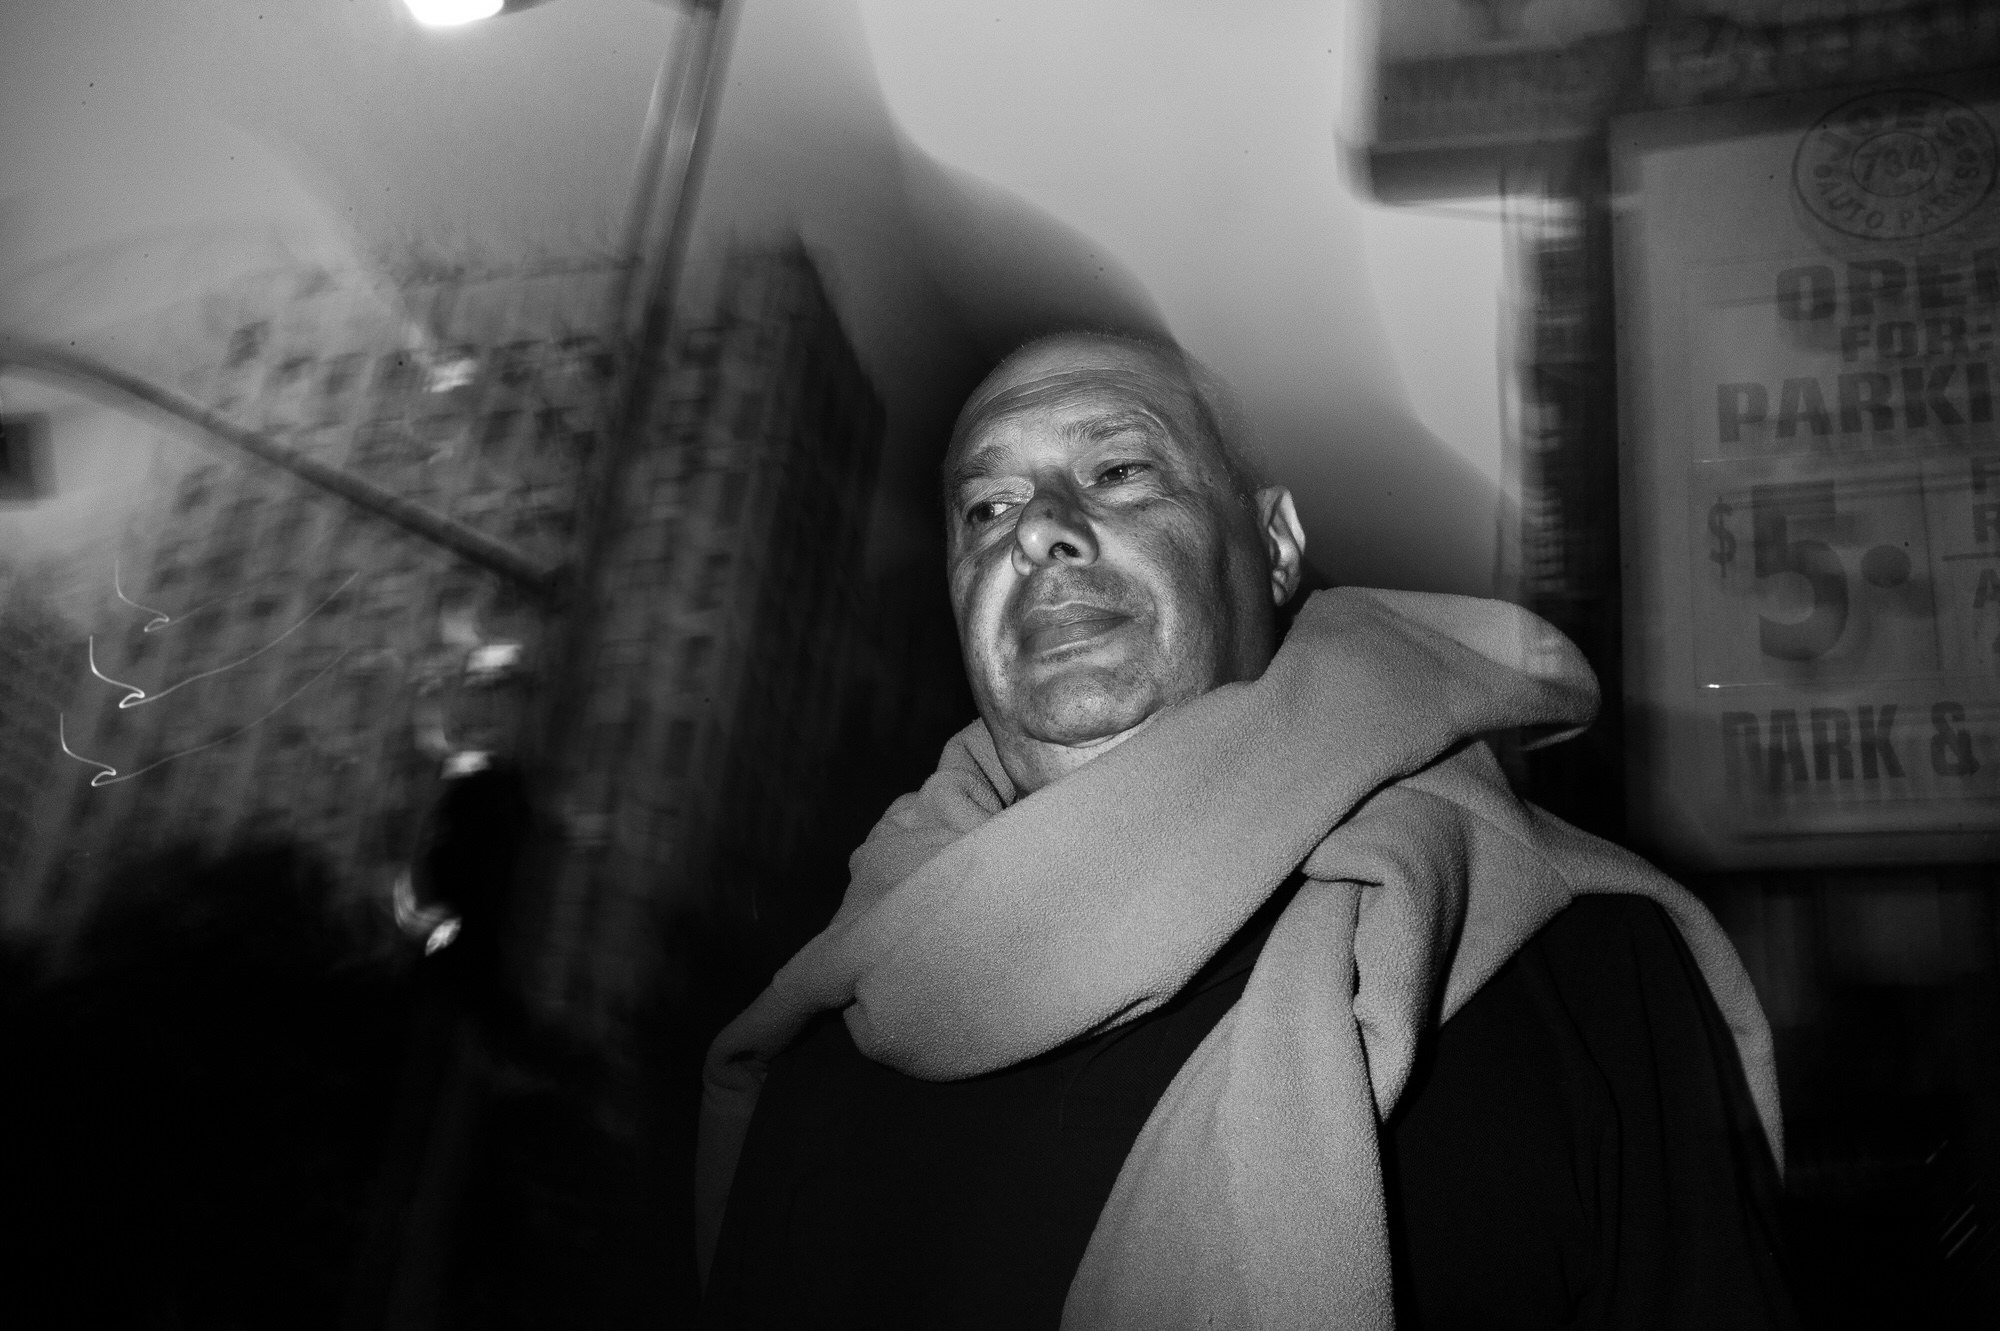 eric kim black and white street photography downtown los angeles 00002